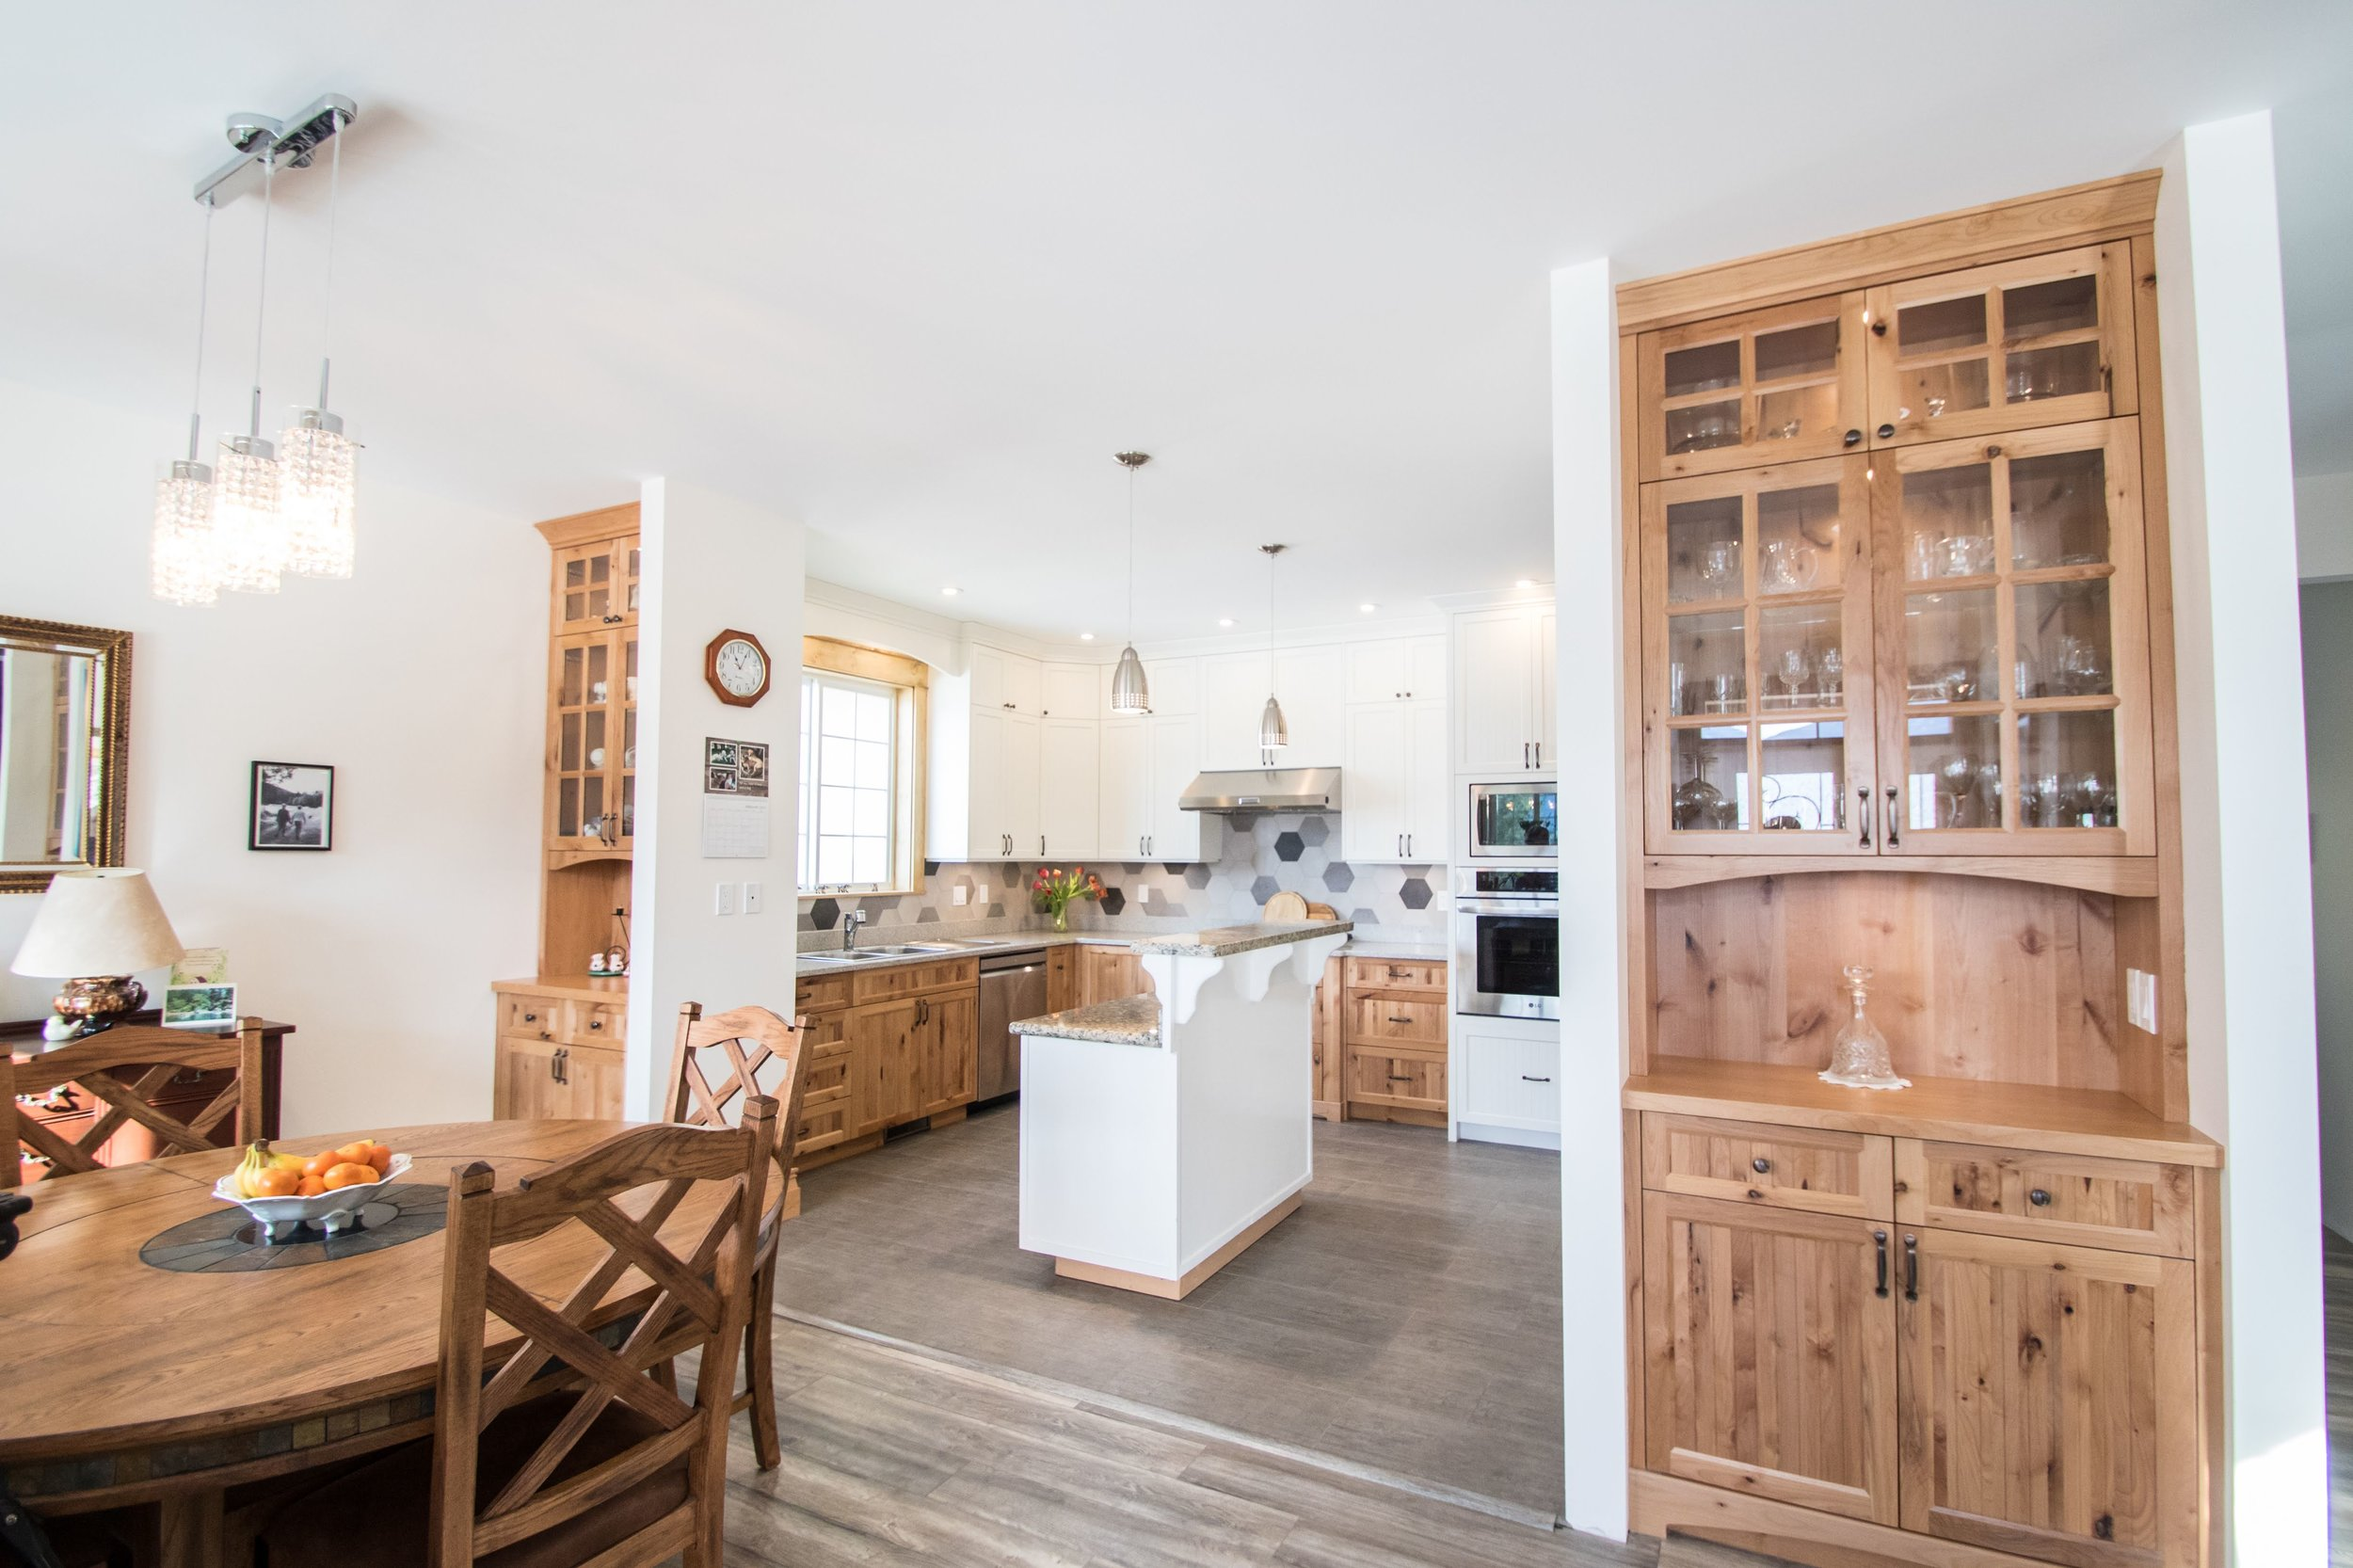 Anthea & Darrel Archer - (Client)Project Date: October 2018, Project Price: $10,000 - $49,999Jen Reeder was our designer at Cowichan Woodwork. We were excited building our retirement home in Lake Cowichan and Jen was thoughtful in her suggestions giving choices carefully explaining the advantages of each option. Jen was always available or returning calls promptly. The craftsmanship of our kitchen is superb with material for touch up over time, so far none needed. We were pleased that Jen returned to take photographs of a kitchen that made us proud.